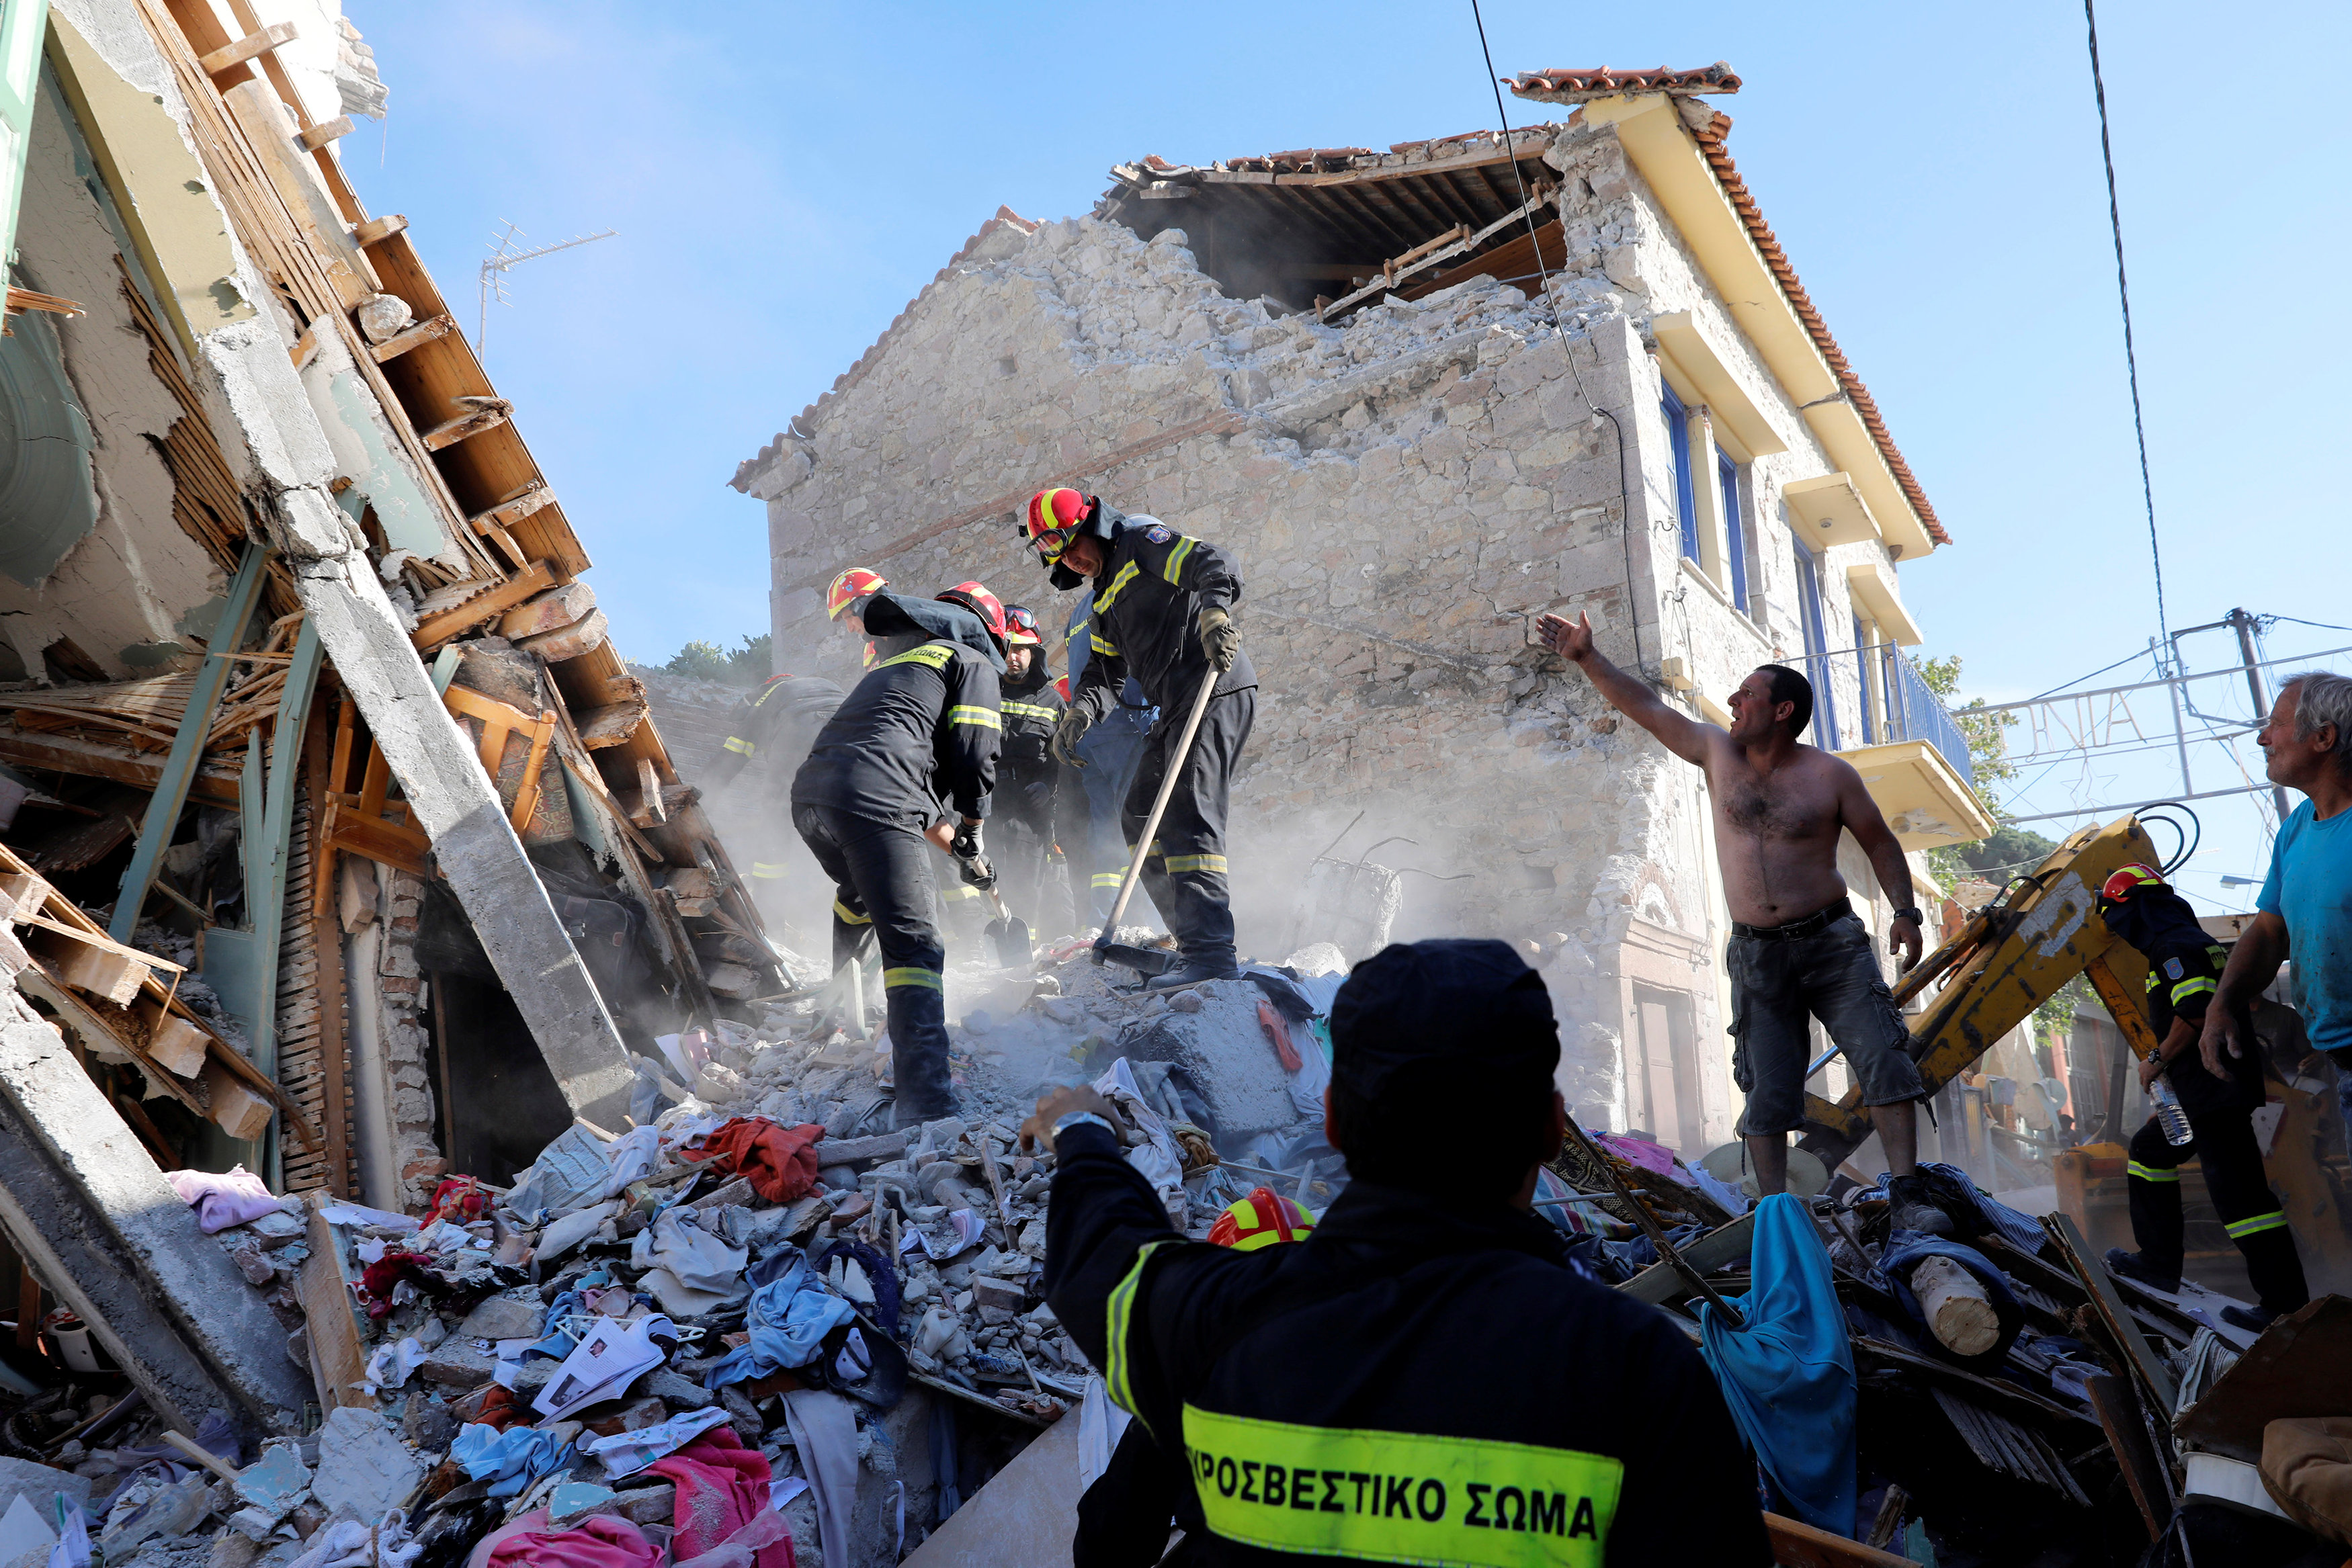 Rescue team members search for victims at a collapsed building in the village of Vrissa on the Greek island of Lesbos, Greece, after a strong earthquake shook the eastern Aegean,